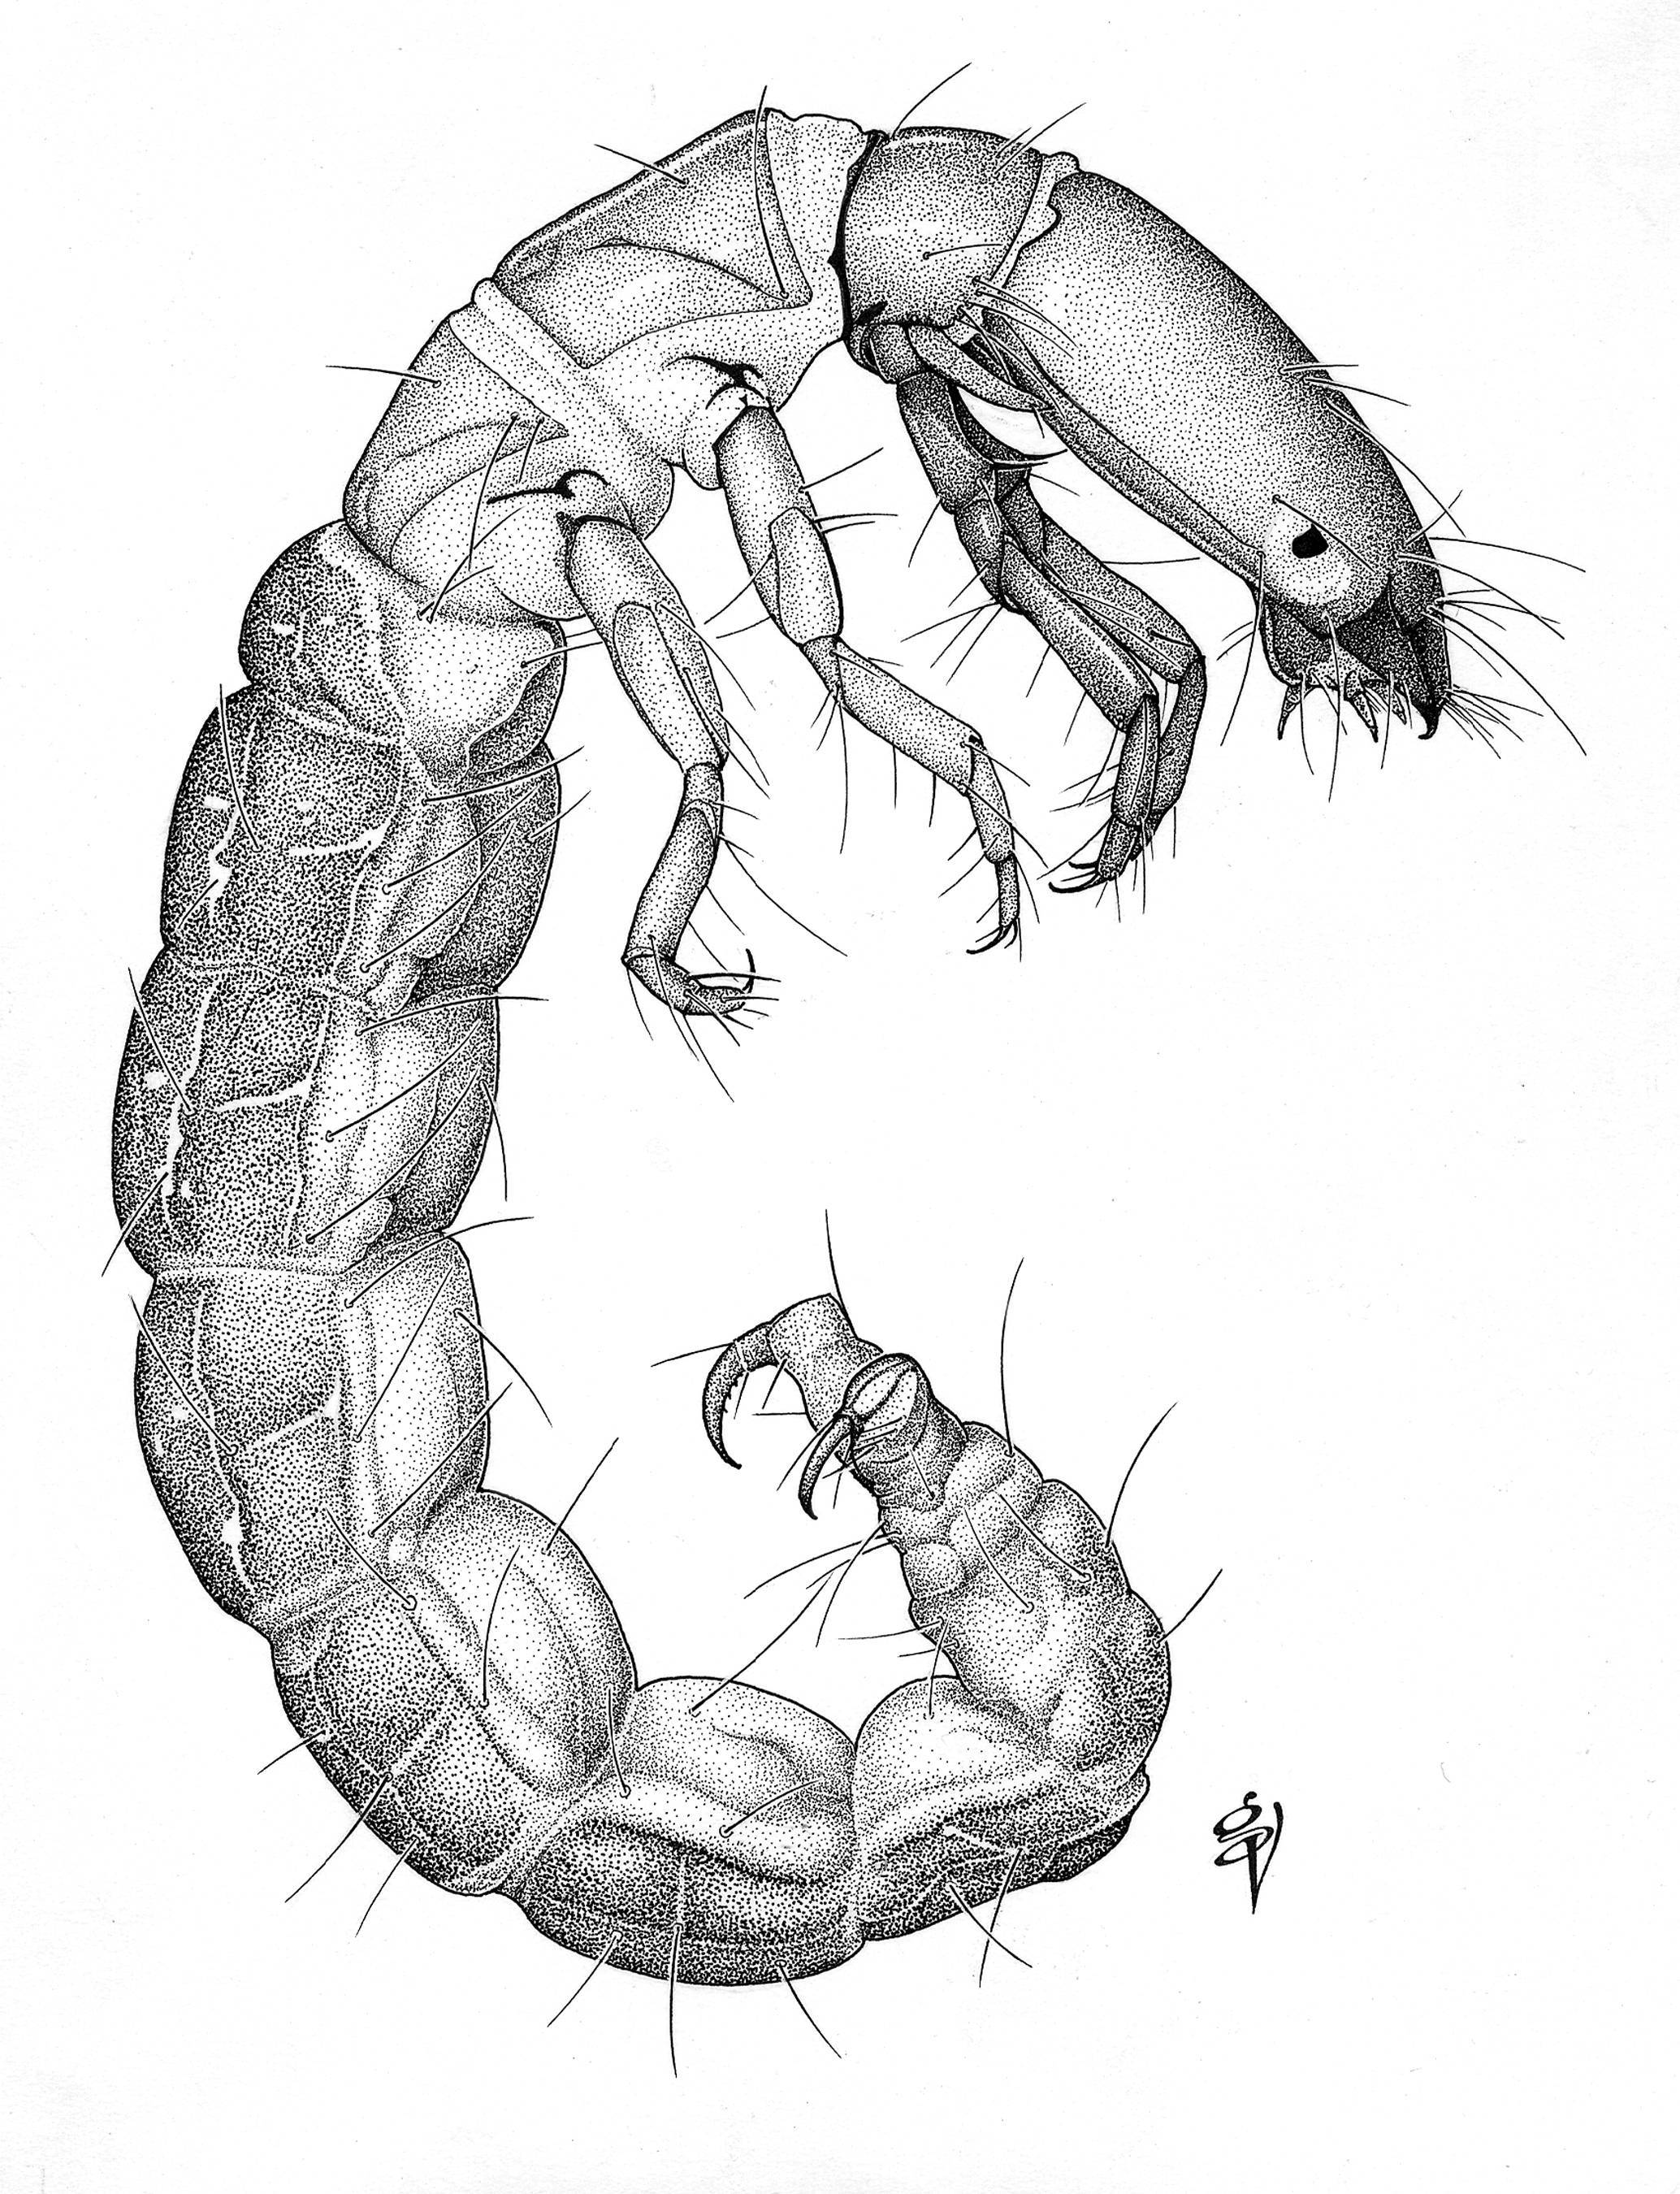 Image of Austrotinodes